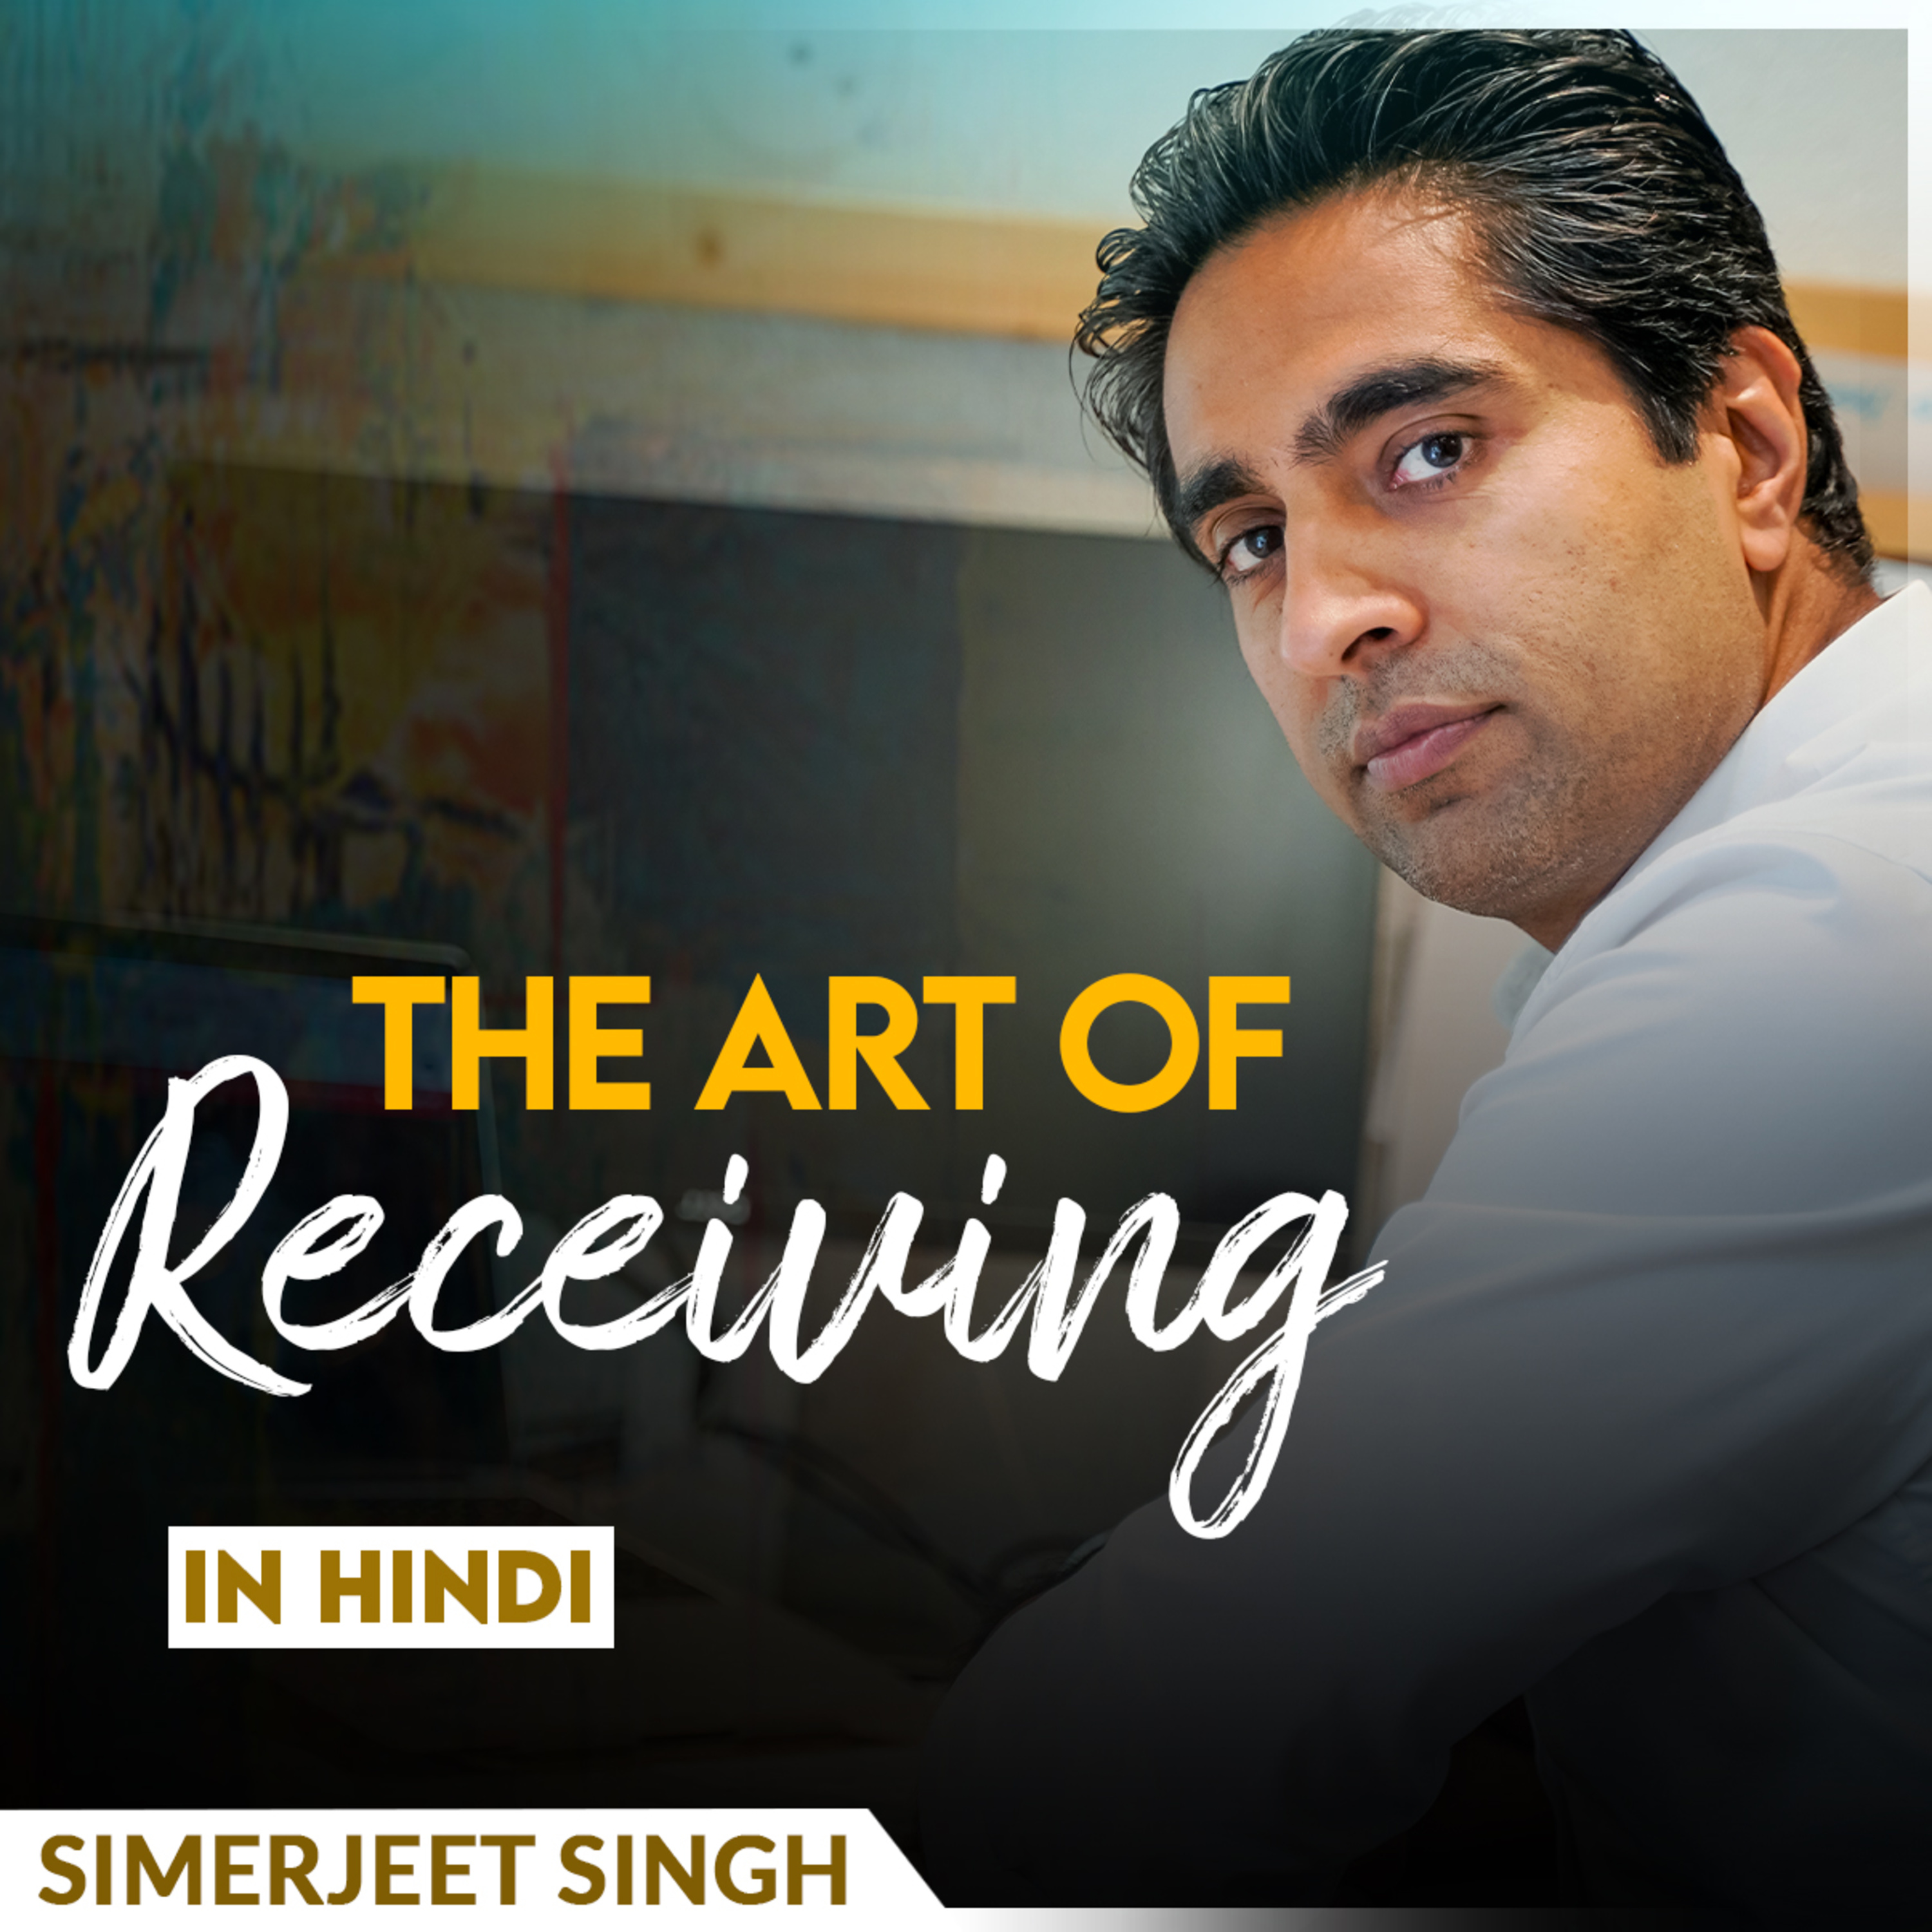 The Art of Receiving in Hindi by Simerjeet Singh | Hindi Inspirational Video - Attitude of Gratitude